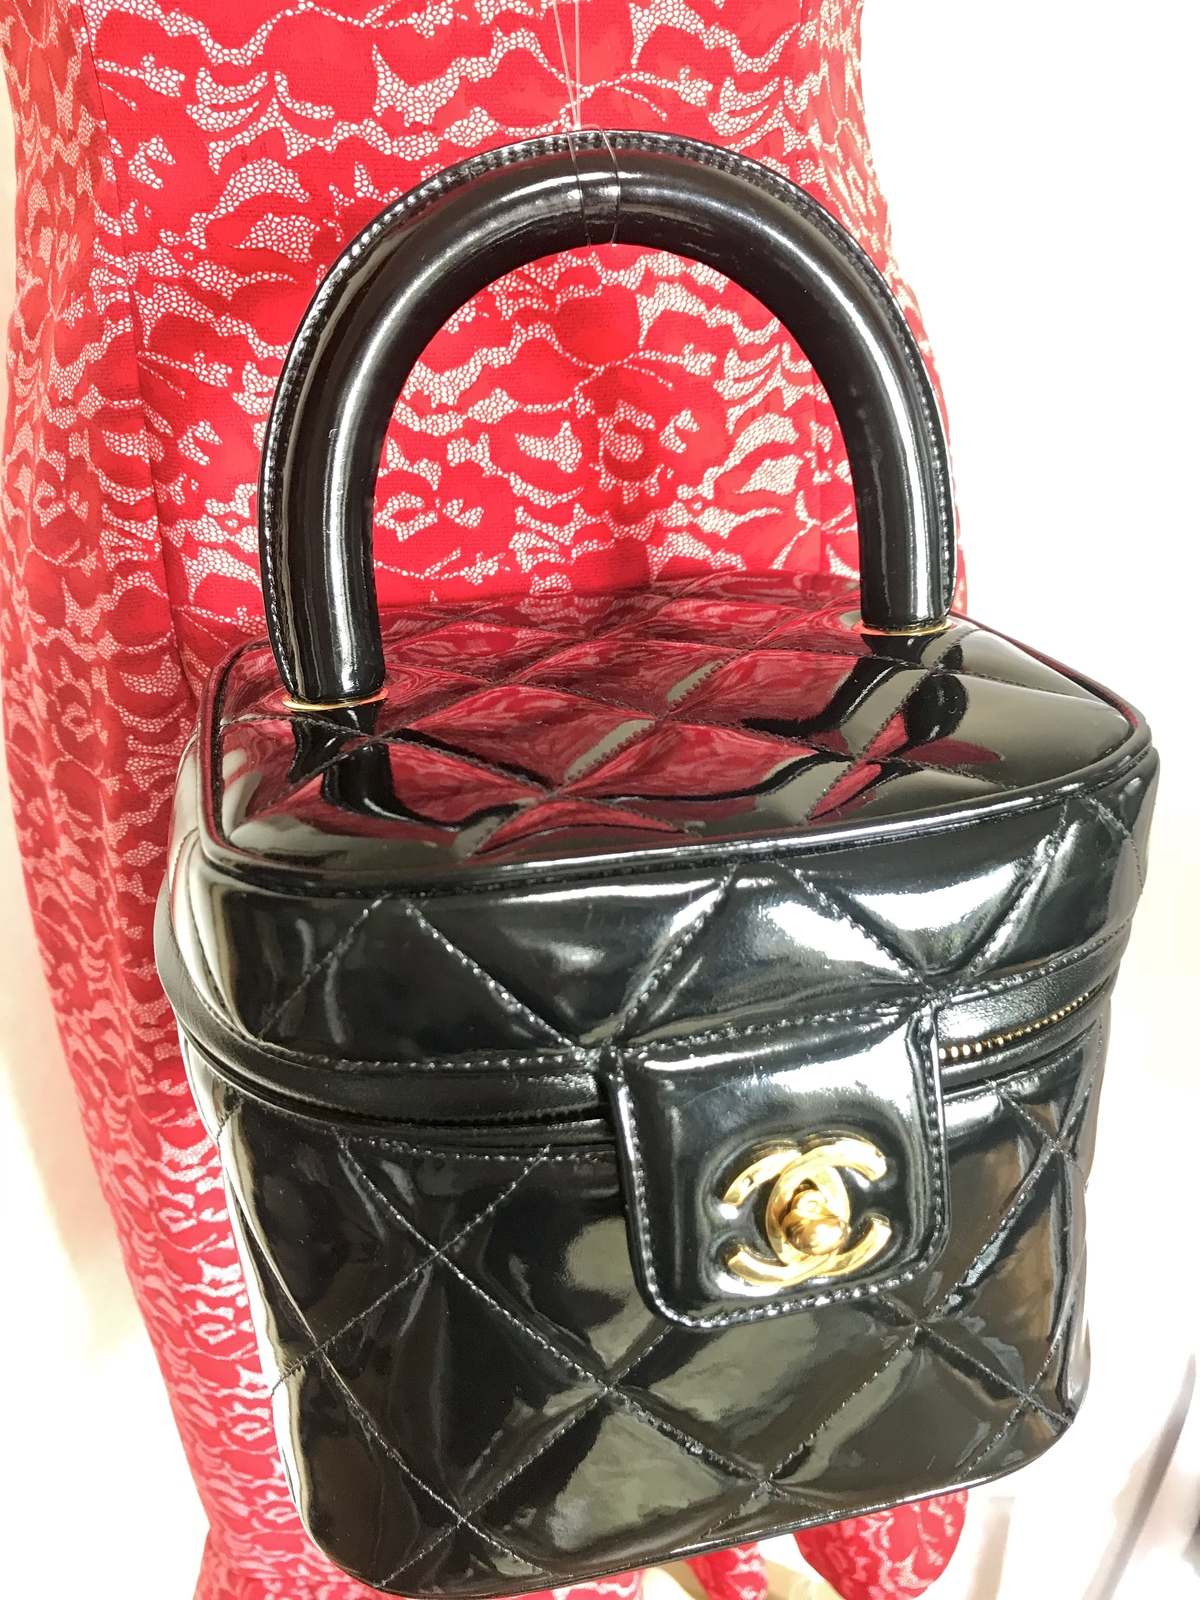 dddbe16a194e 1bfbba9a 6018 4d83 bf71 7aa7ce79f30f. 1bfbba9a 6018 4d83 bf71 7aa7ce79f30f.  Previous. Vintage CHANEL black patent enamel quilted leather vanity bag ...